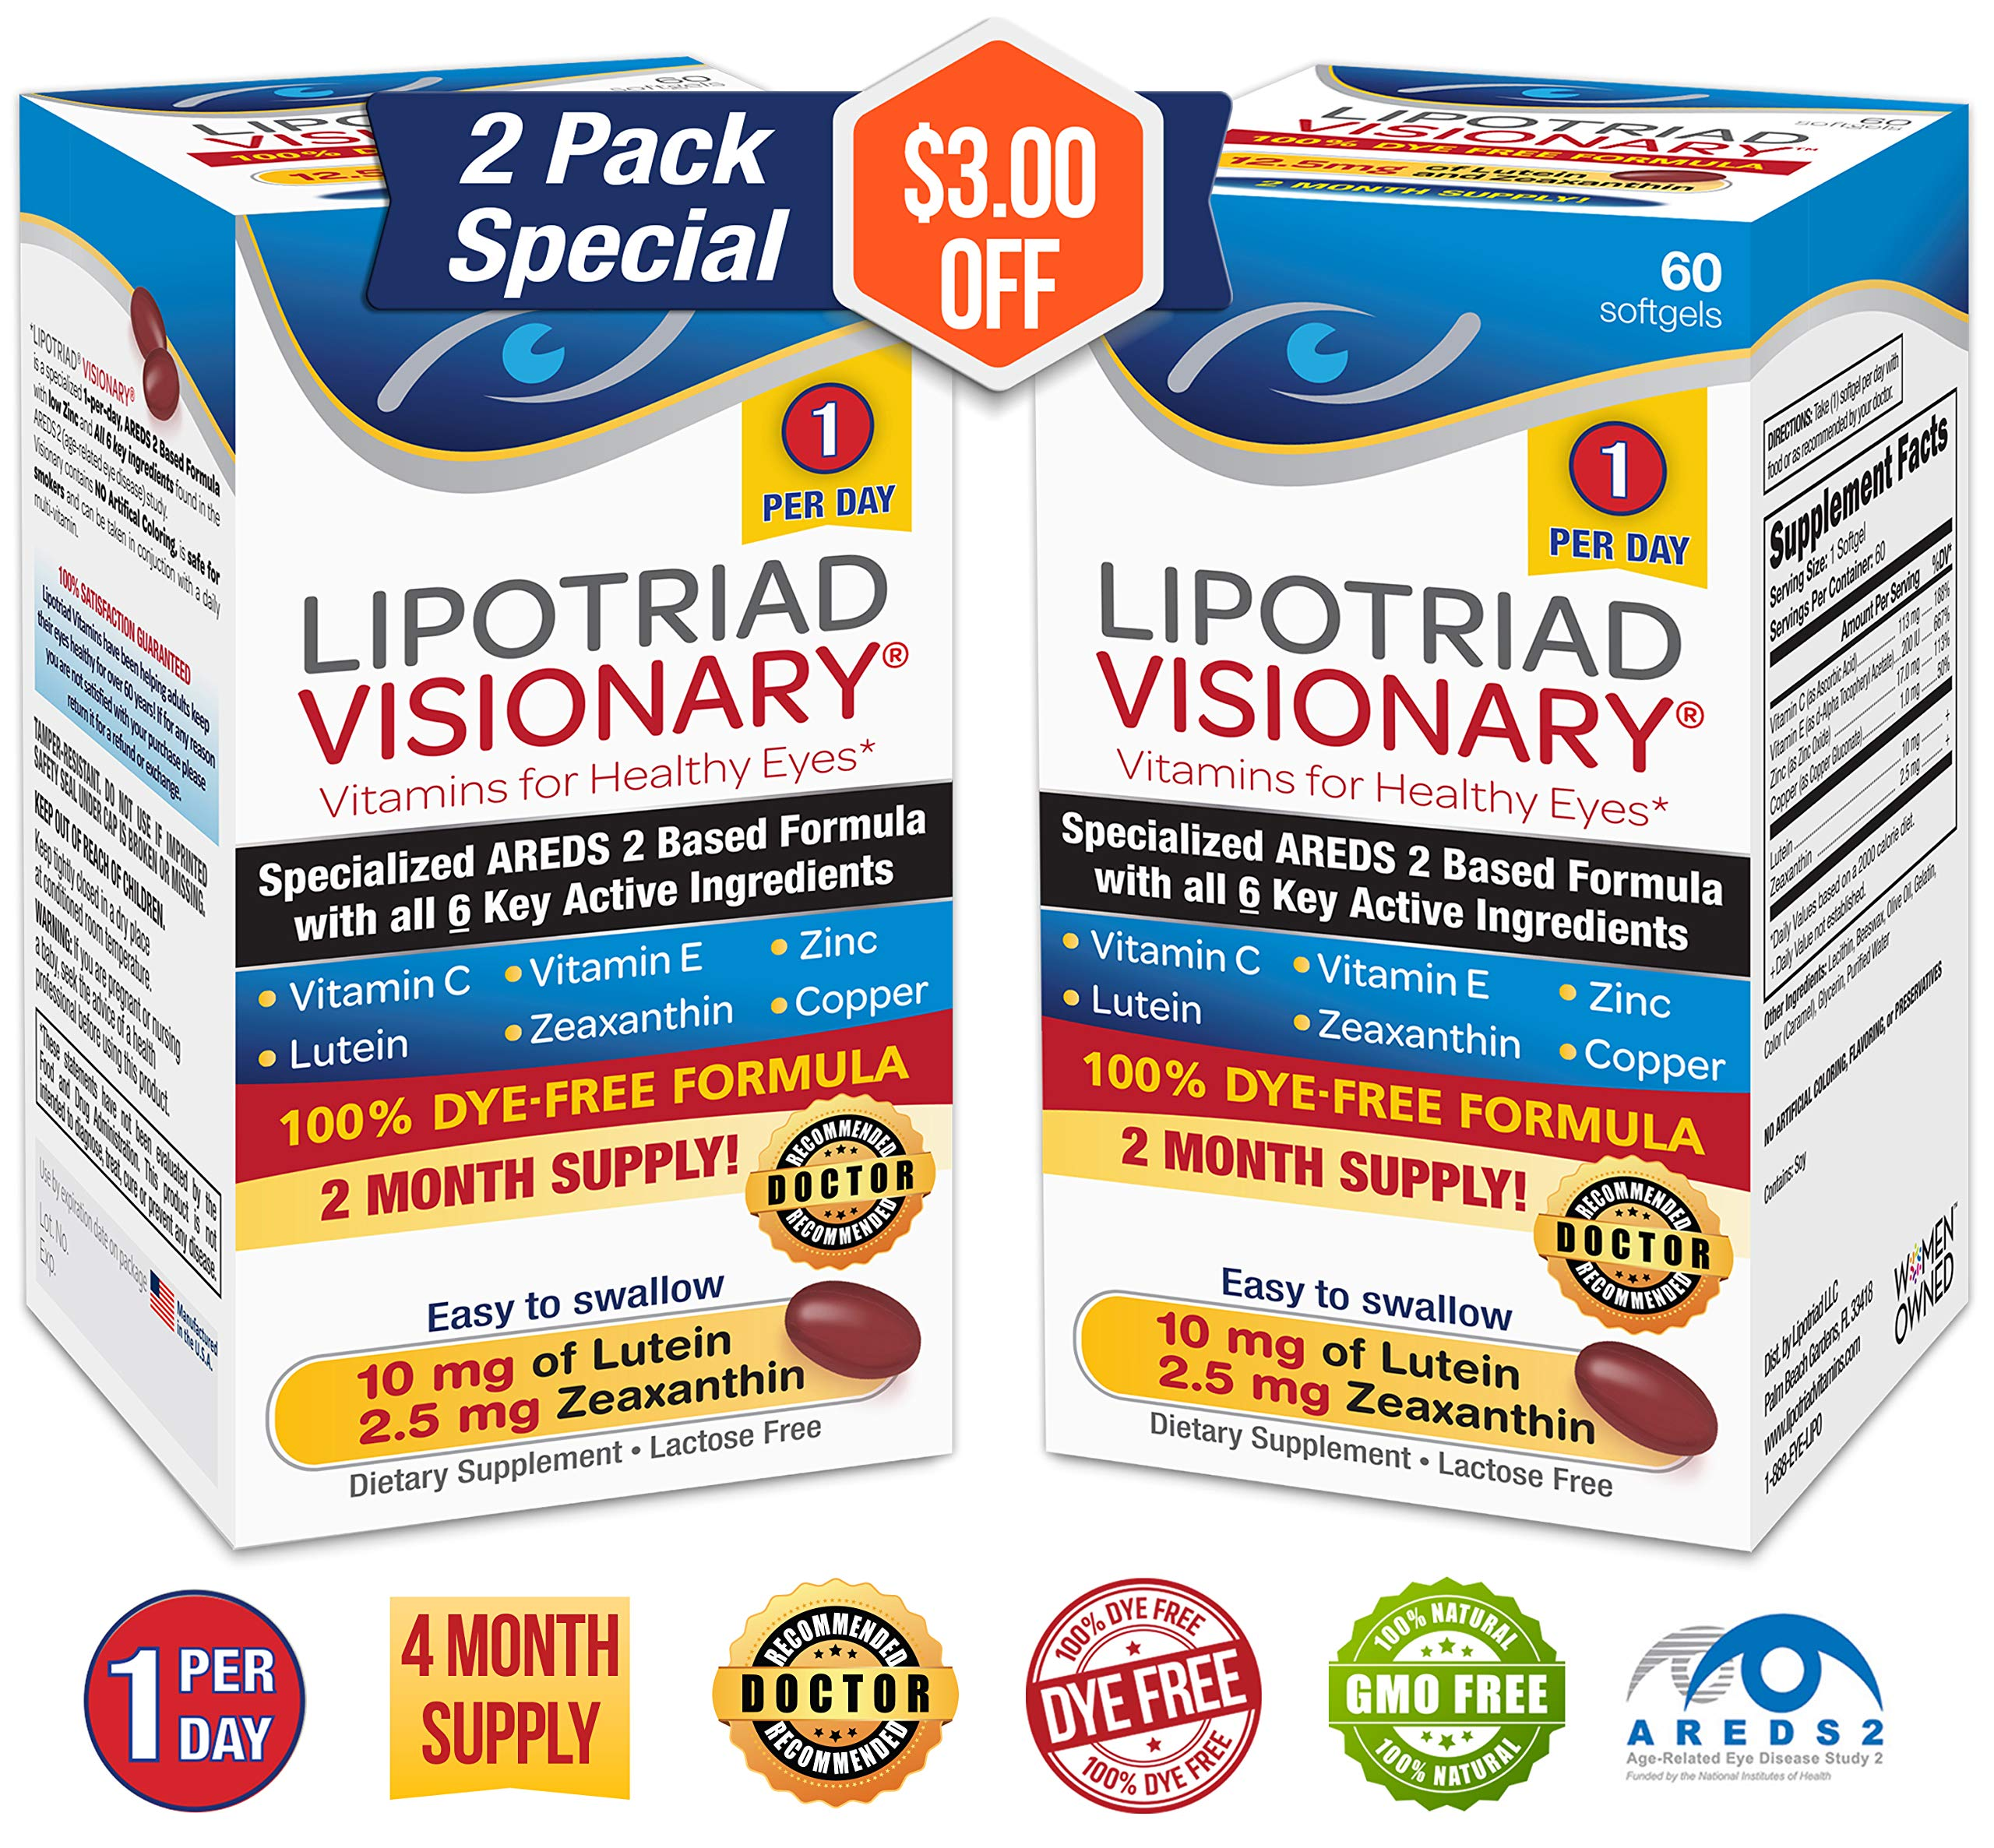 Lipotriad Visionary 1 Per Day AREDS 2 Eye Vitamin & Mineral Supplement | W/All 6 Key Ingredients in The AREDS 2 Study | Dye Free, Low Zinc, Safe for Smokers, Easy to Swallow | 2 Pack, 4 Mo Supply by Lipotriad